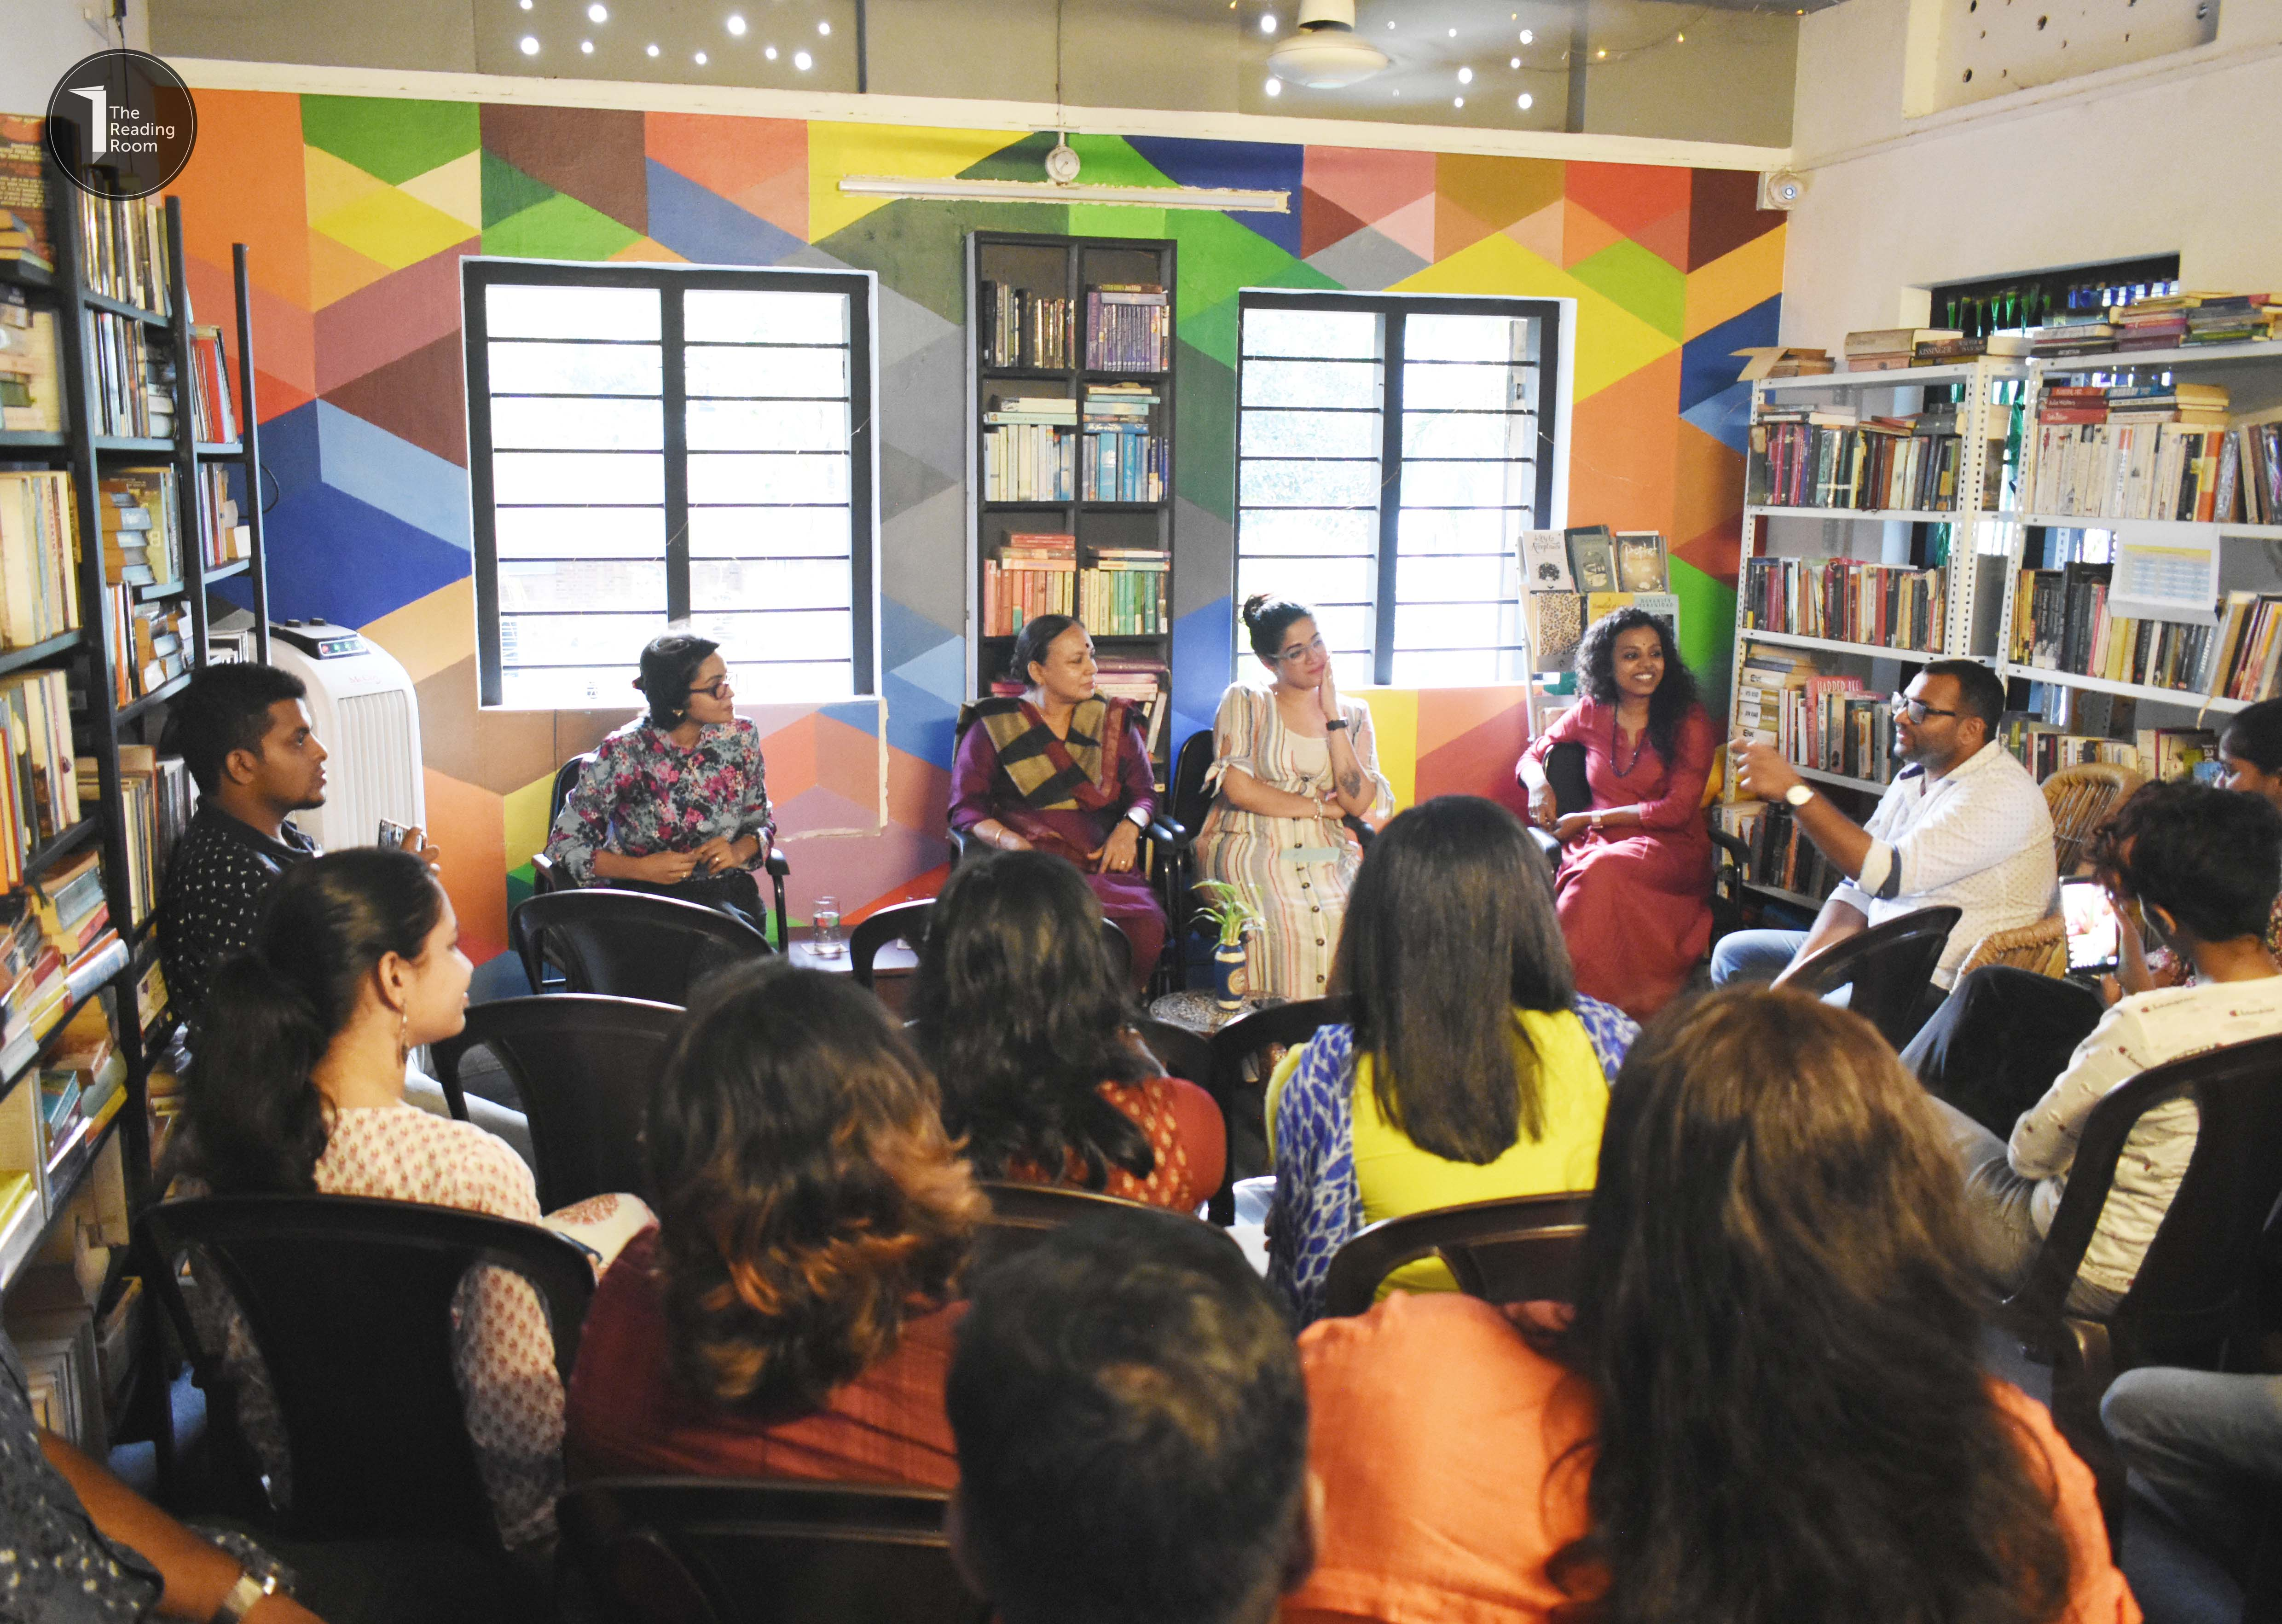 The Reading Room: Panel Discussion